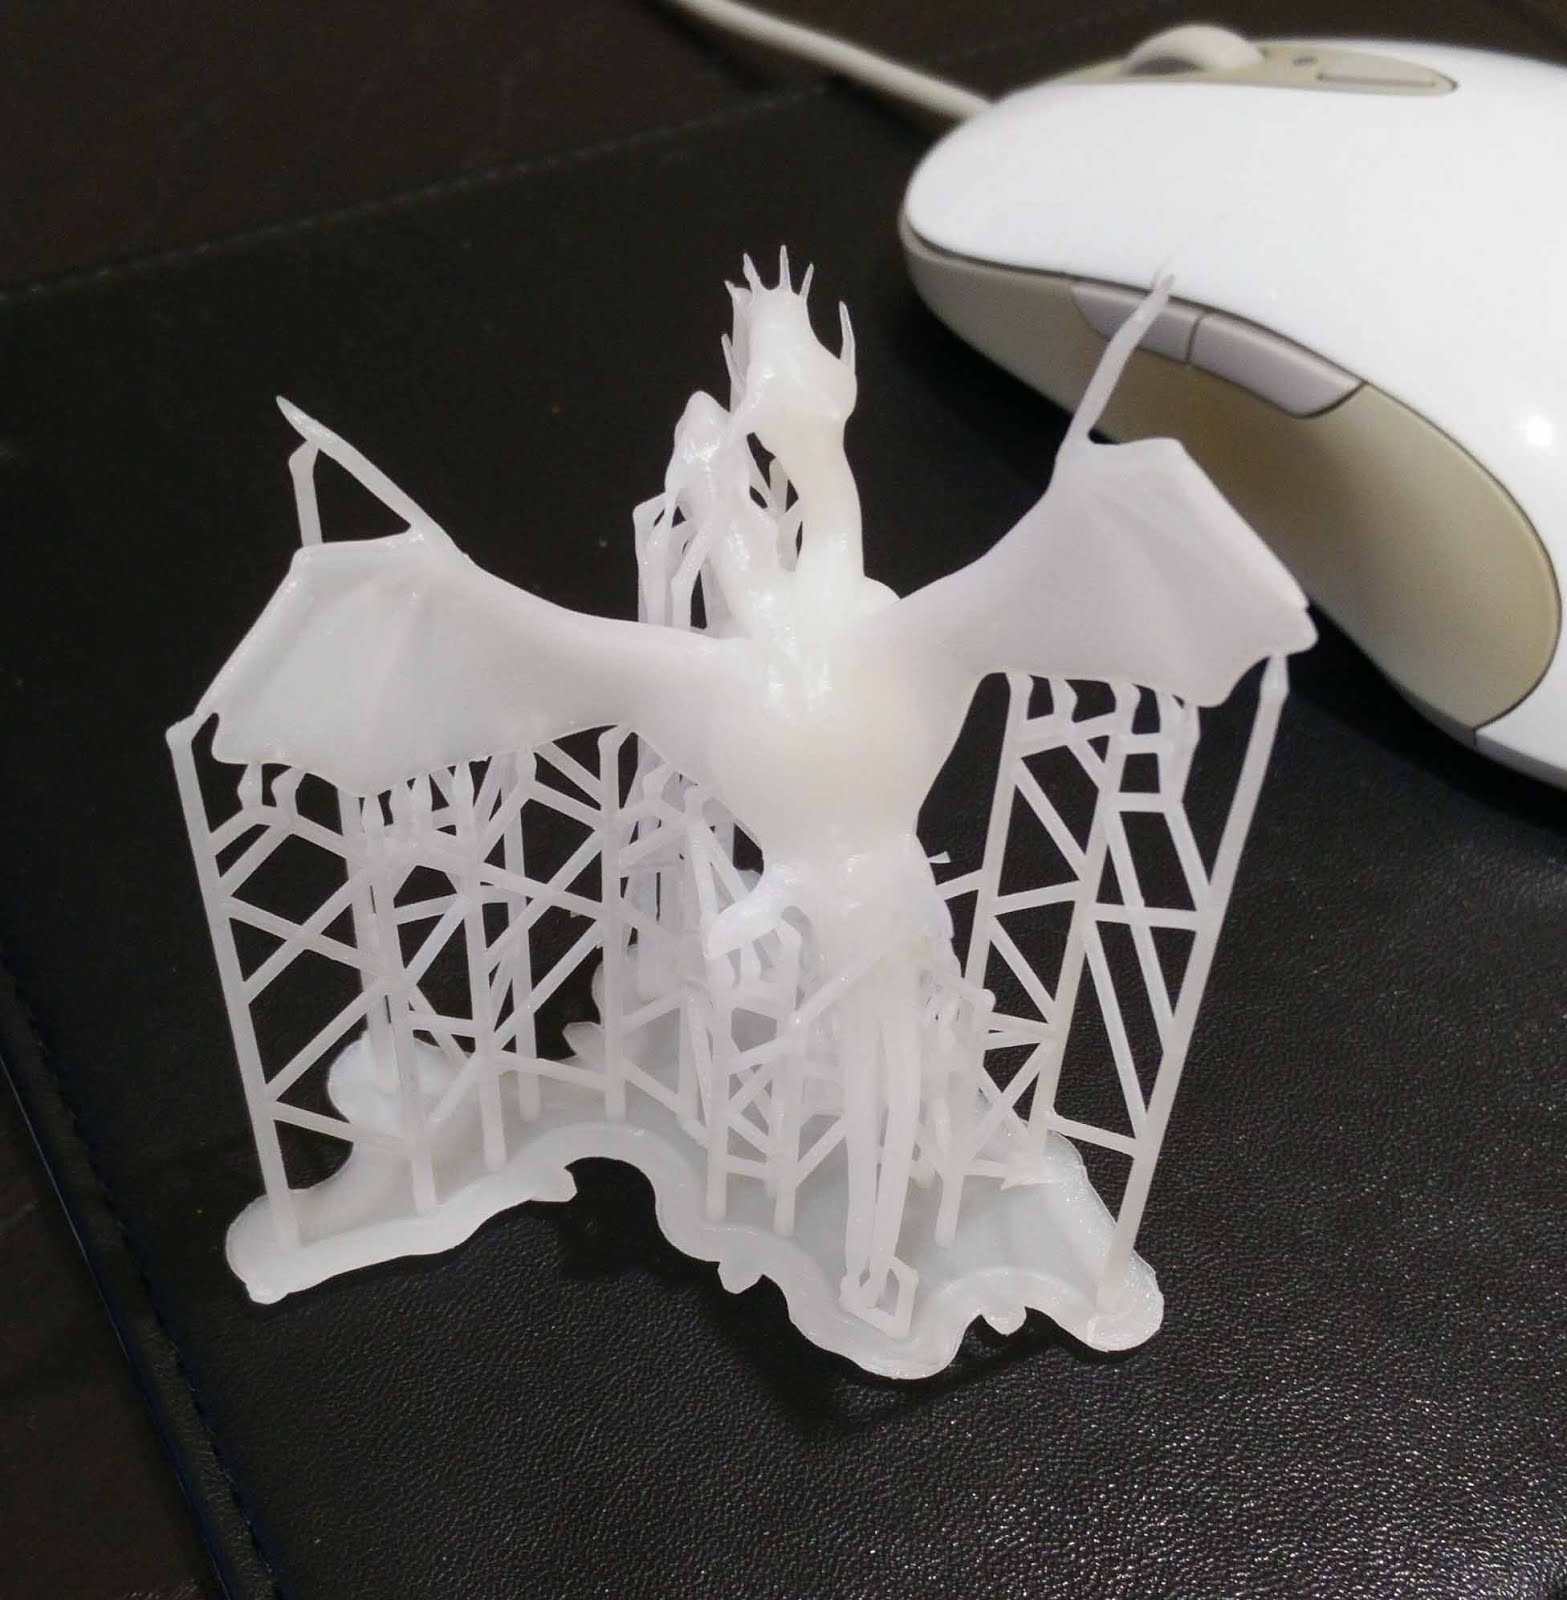 Jakiro 3D printed, immersed in scaffolding